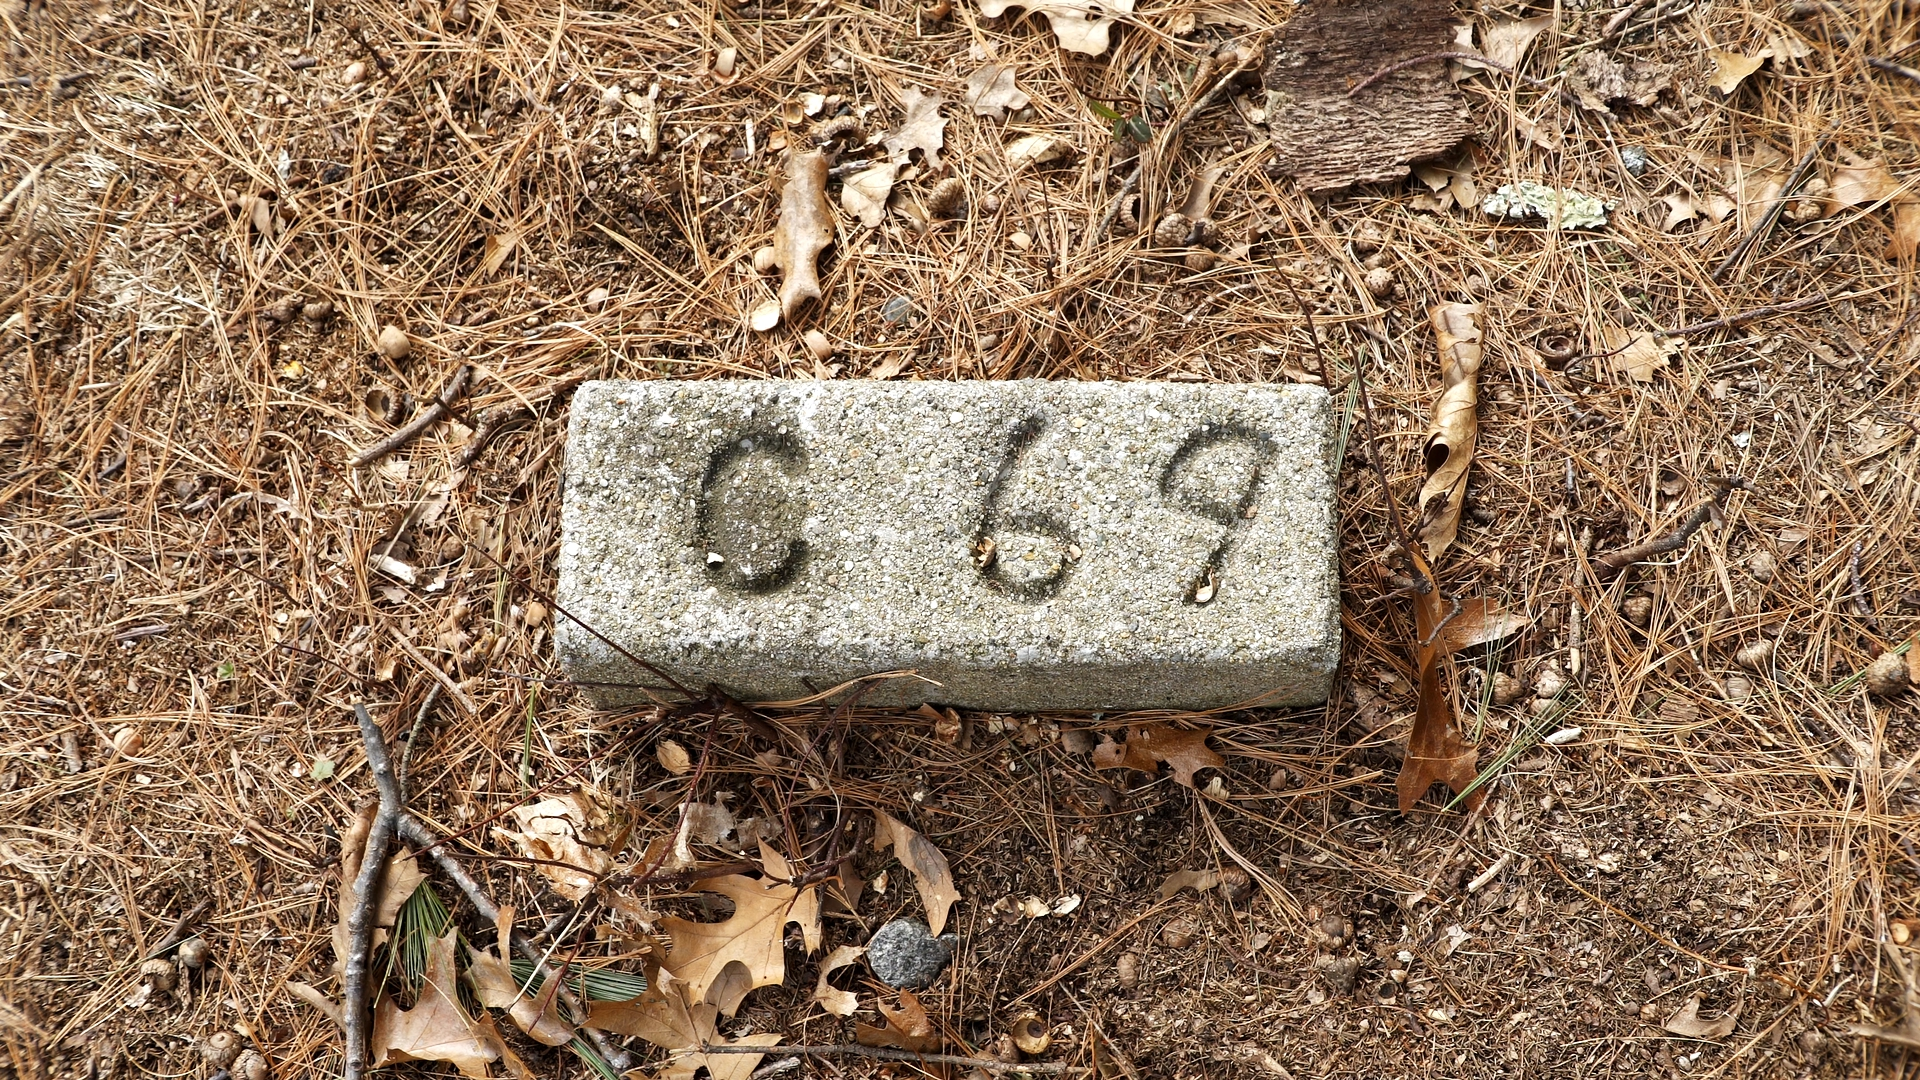 The Fate of Human Beings - The Fate of Human Beings uncovers the stories of 310 unidentified people buried in the Metfern Cemetery, interrogating the collective memory of mental institutions held by the surrounding city of Waltham.